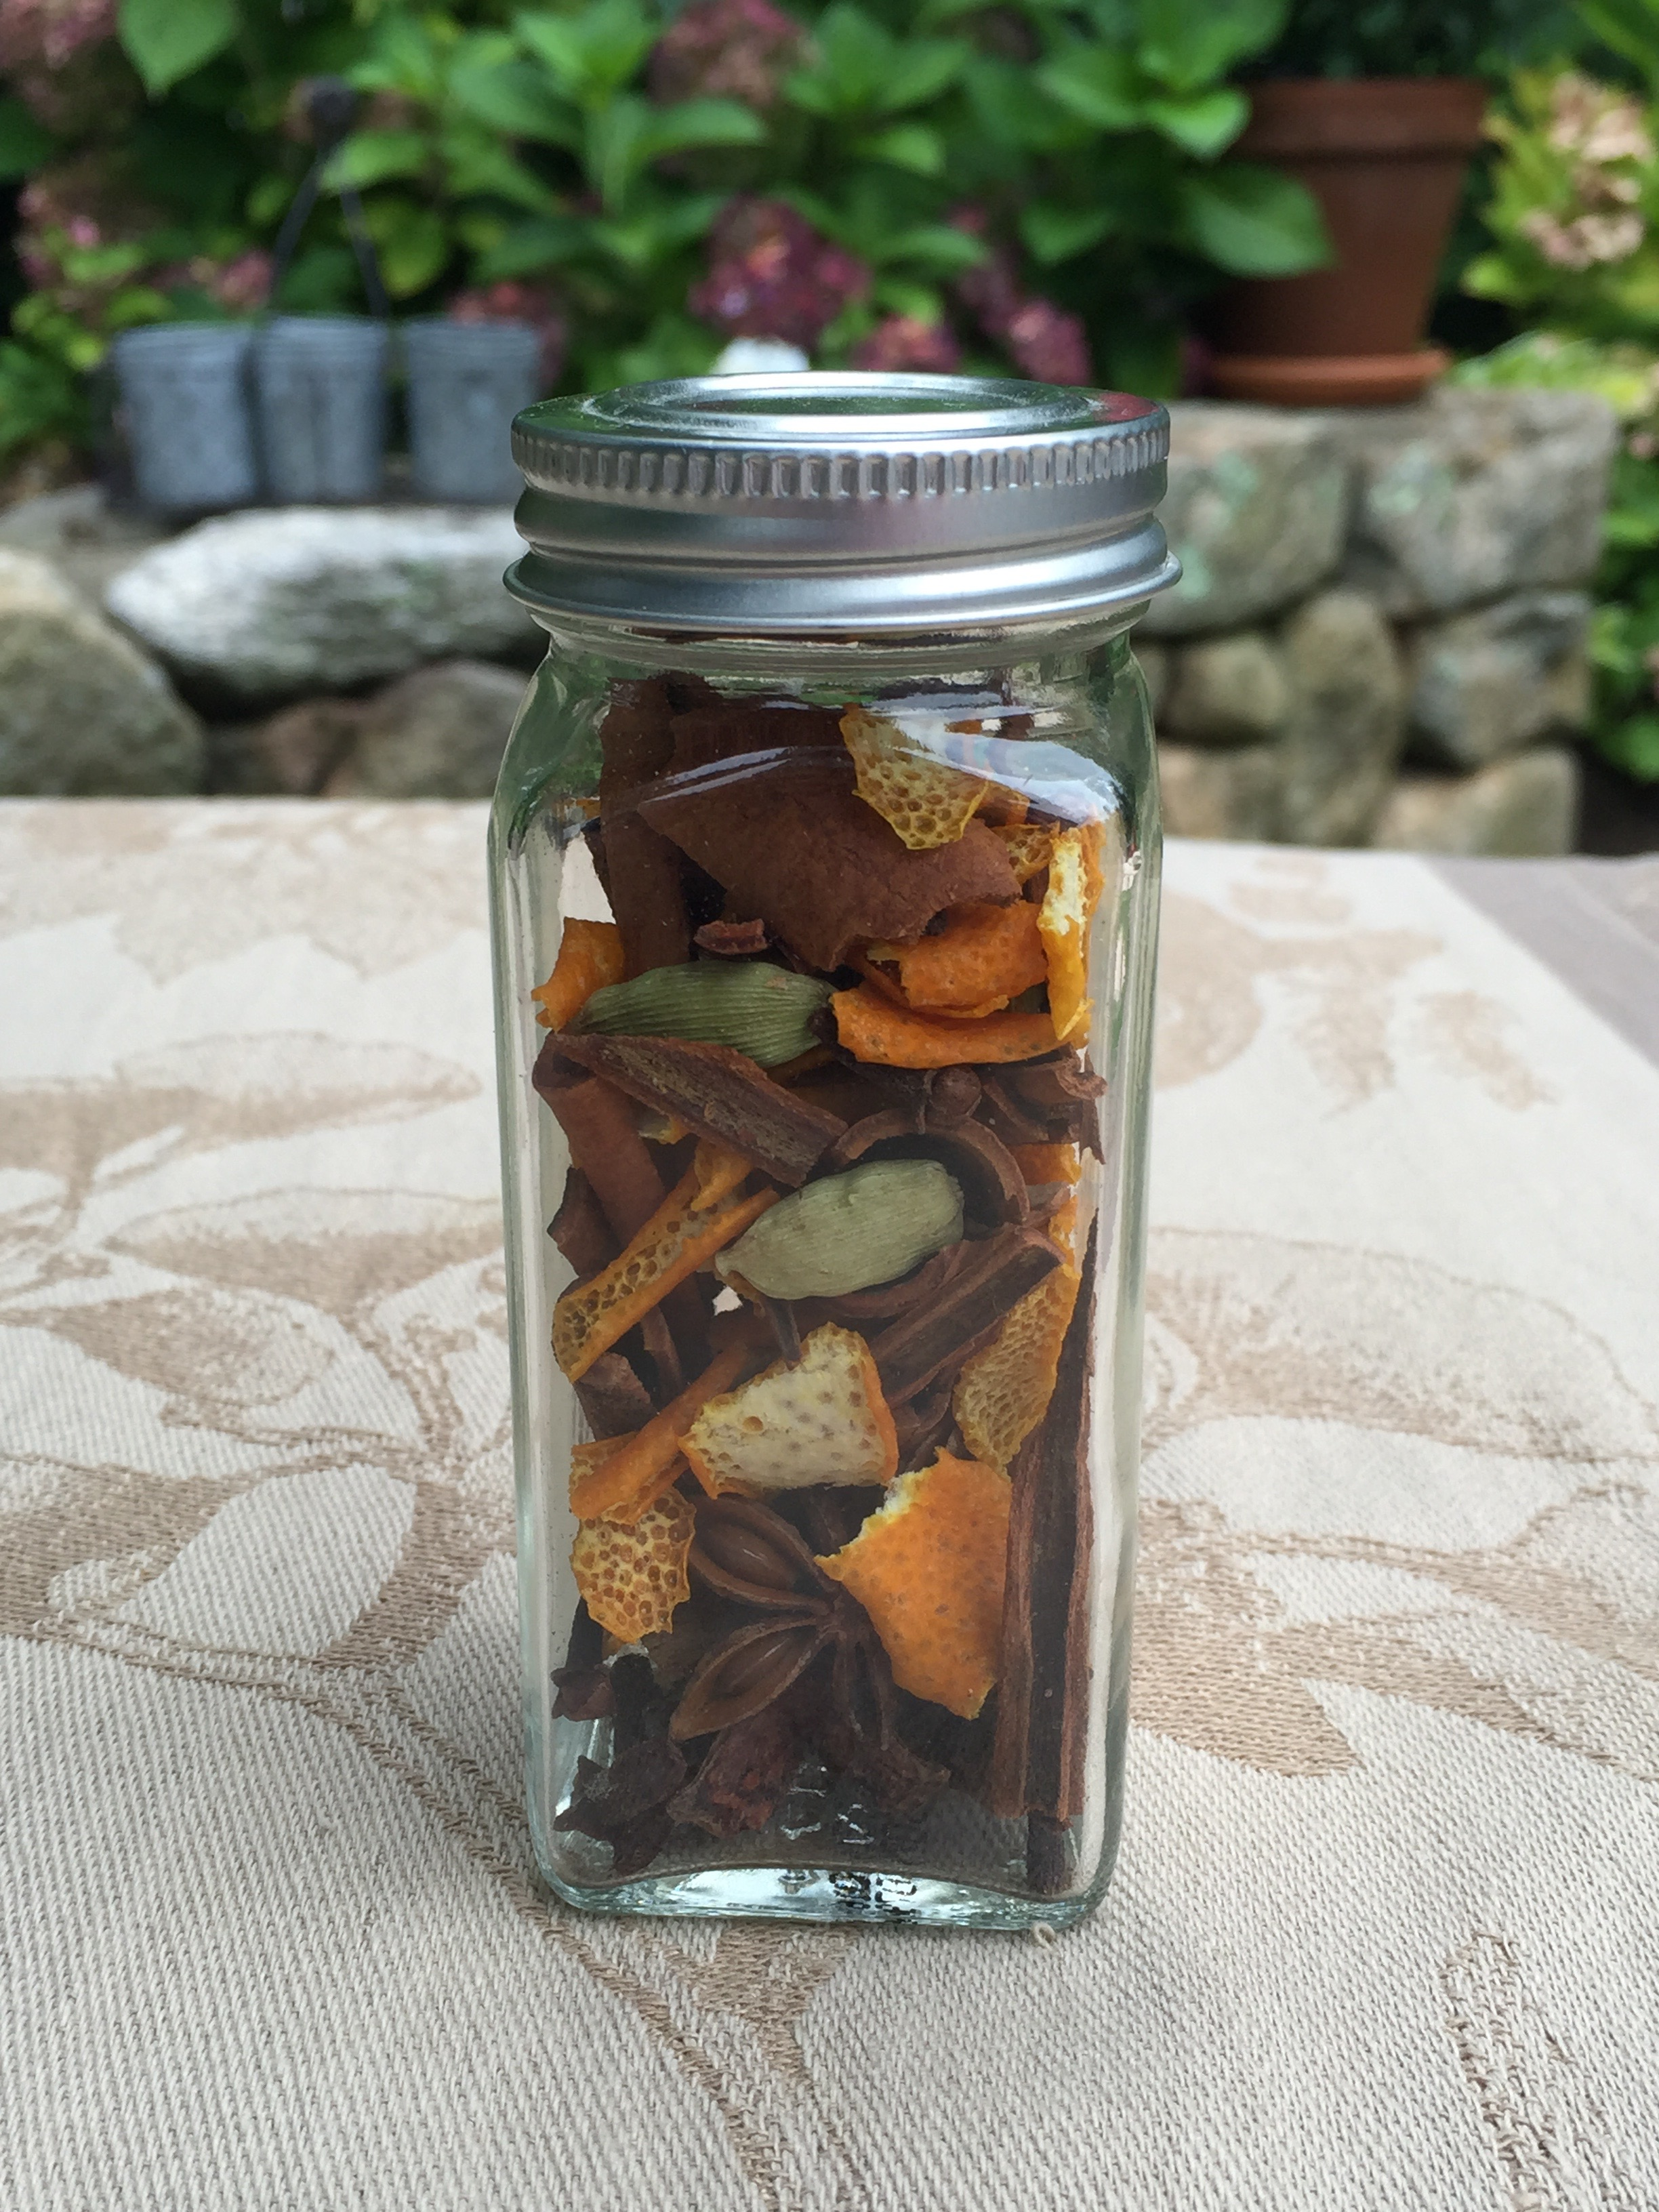 A jar of homemade mulling spices.